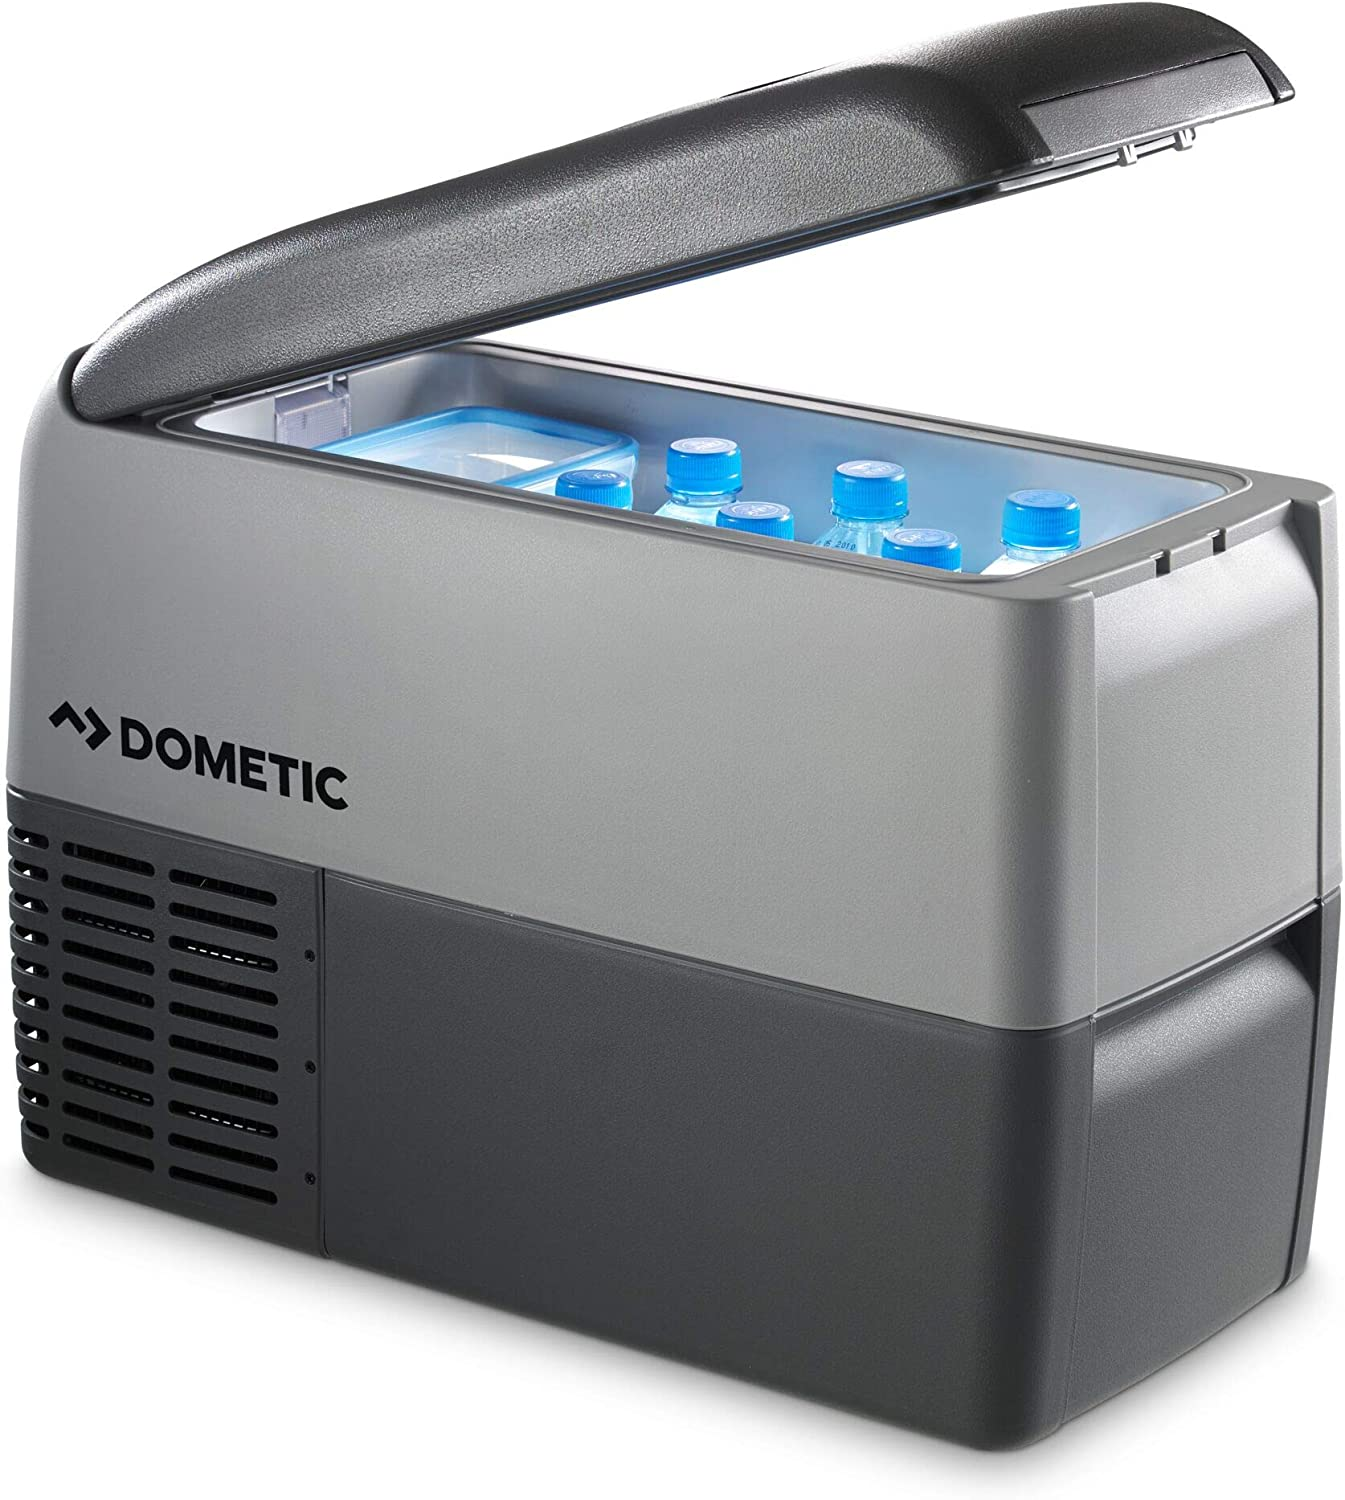 Amazon.es: DOMETIC Coolfreeze CDF 36 - Nevera de compresor ...